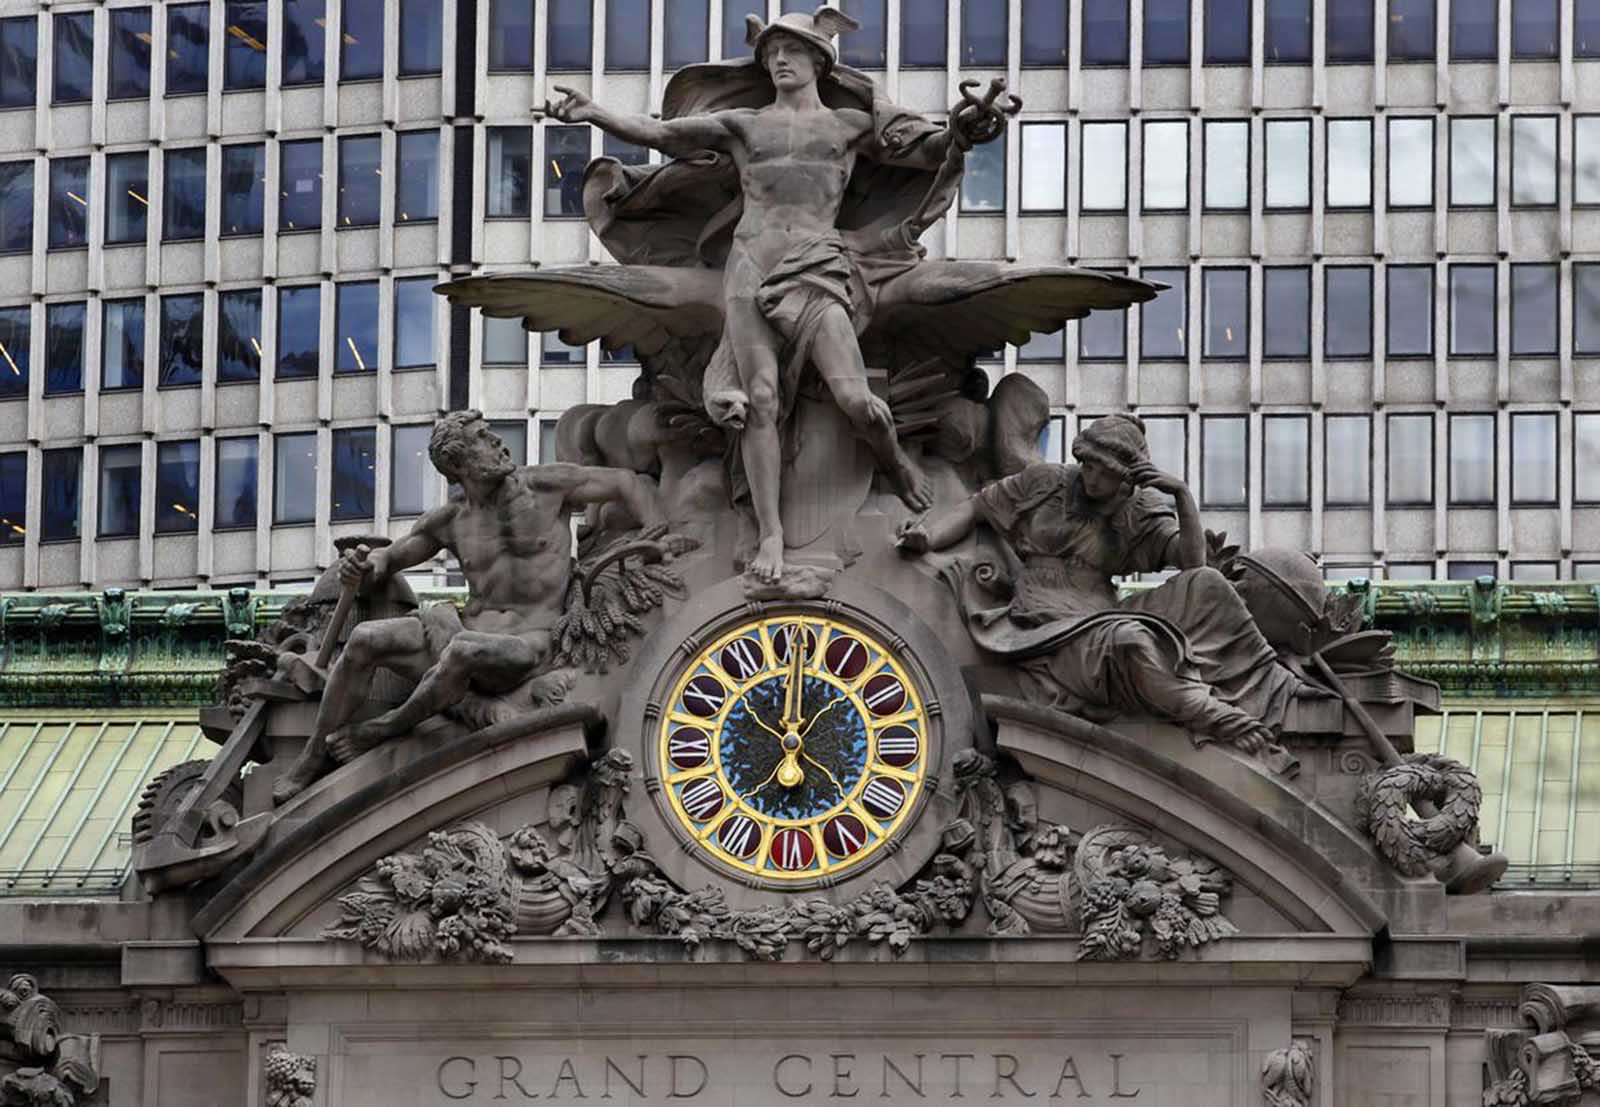 The clock on the south-facing side of New York's Grand Central Terminal strikes noon, on March 29, 2012.